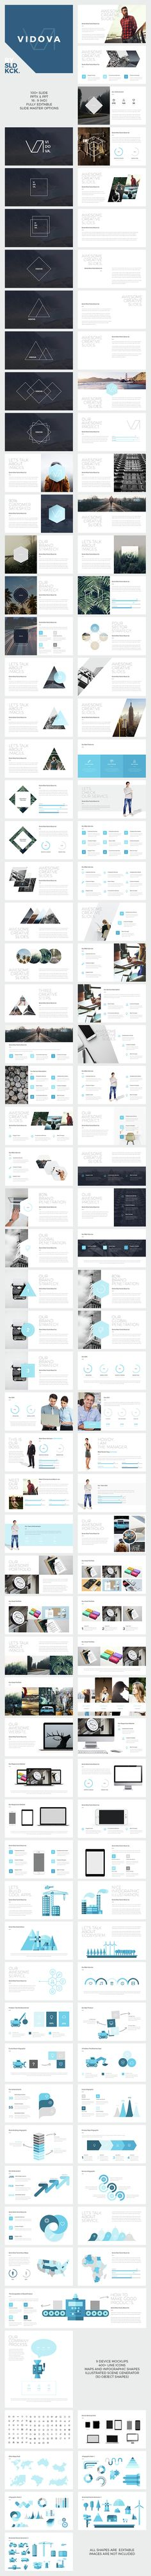 Tie PowerPoint Templates and Backgrounds | Free Blue PowerPoint ...